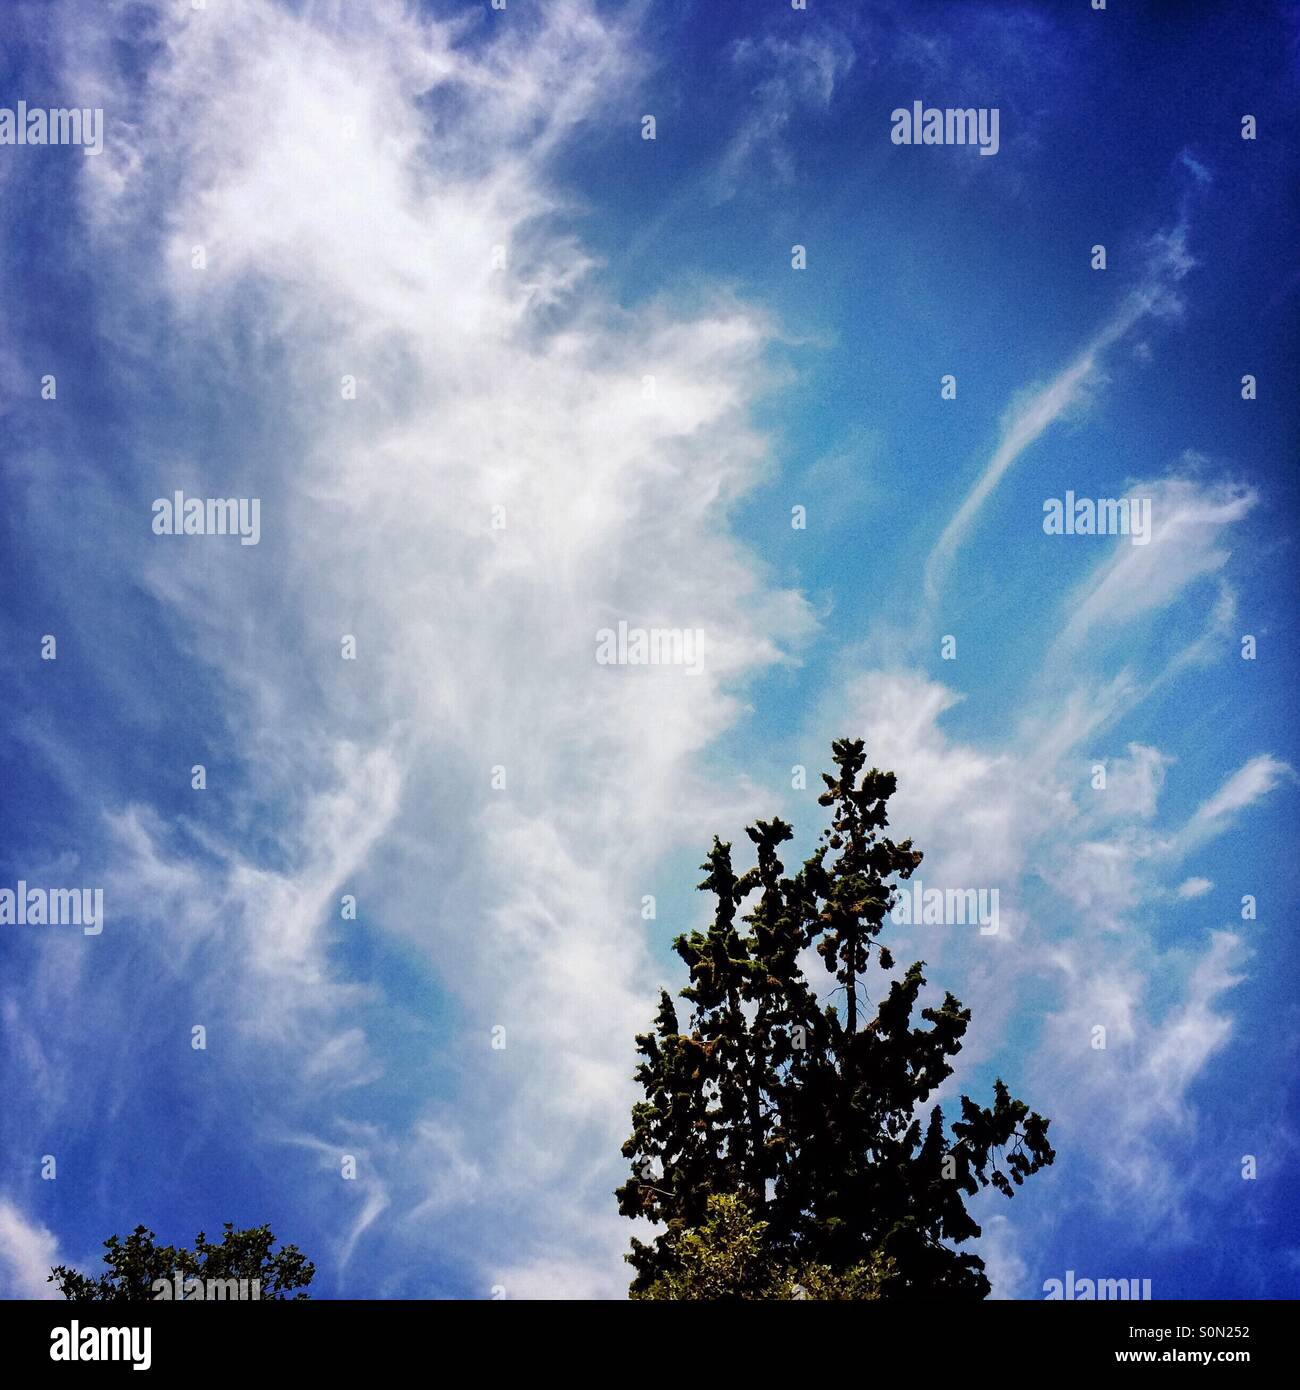 Cloud formations. - Stock Image